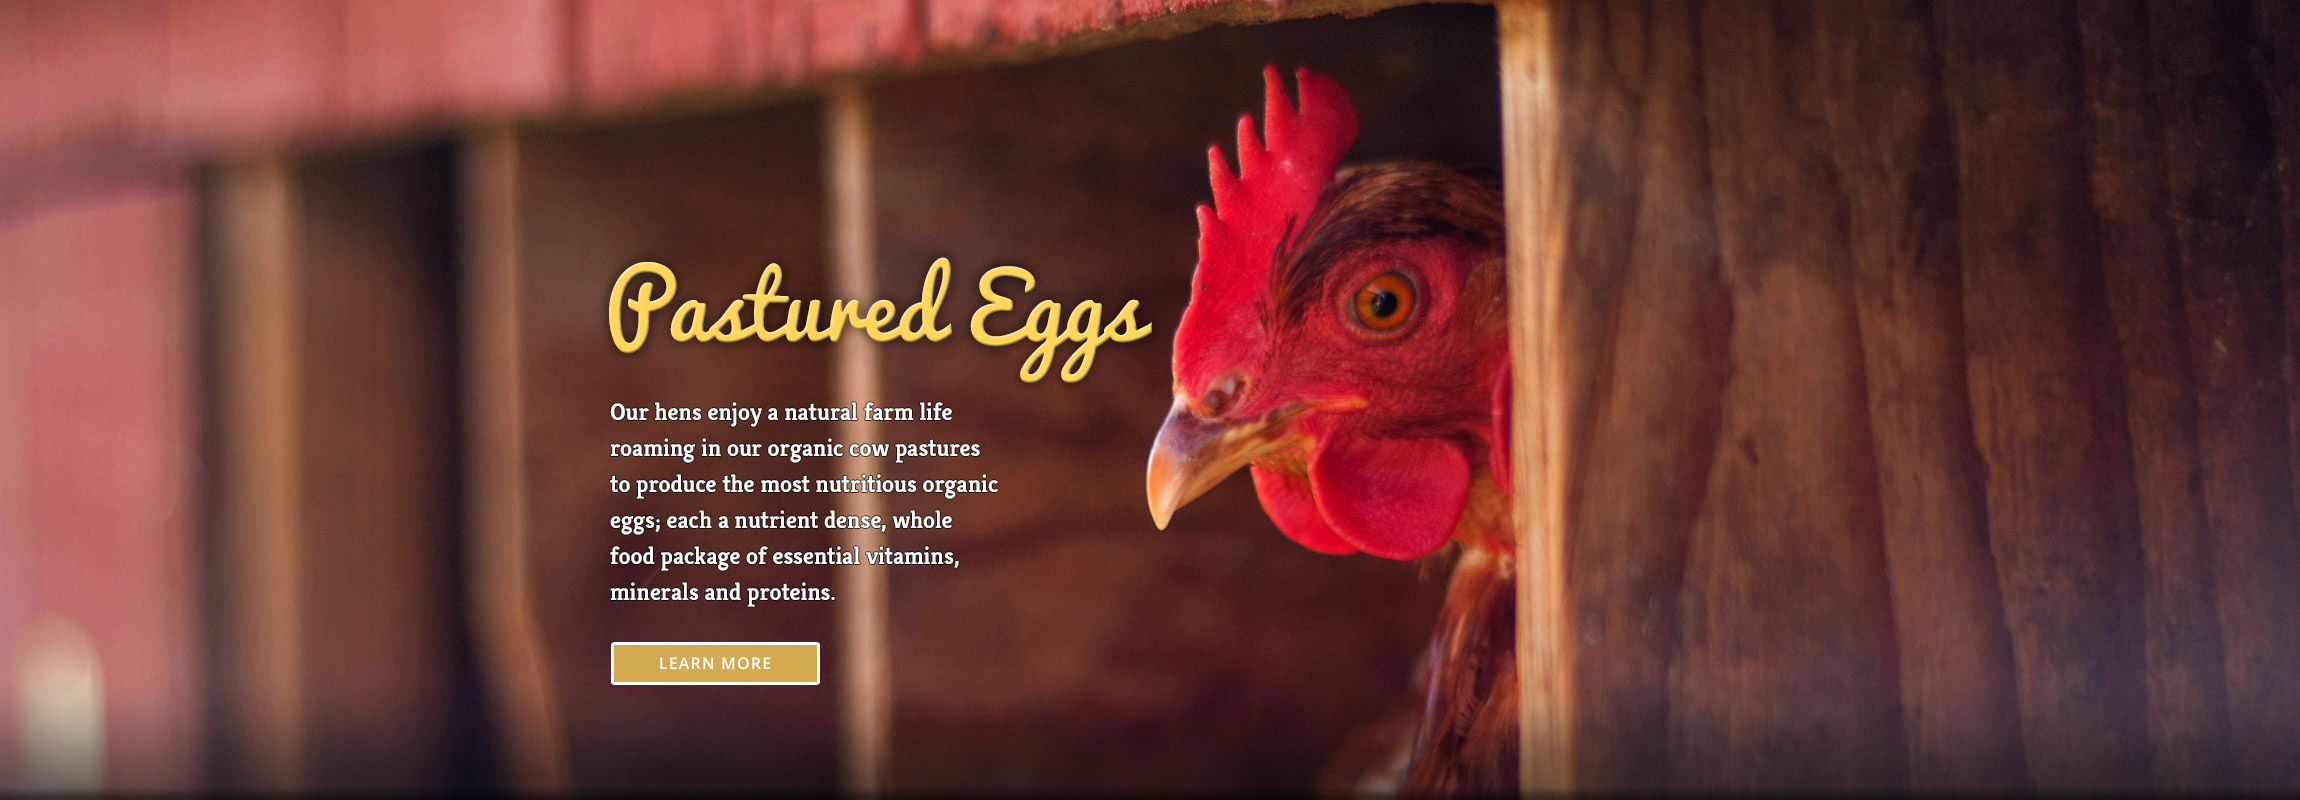 Alexandre EcoDairy Farms pastured eggs website header - Graphic Regime